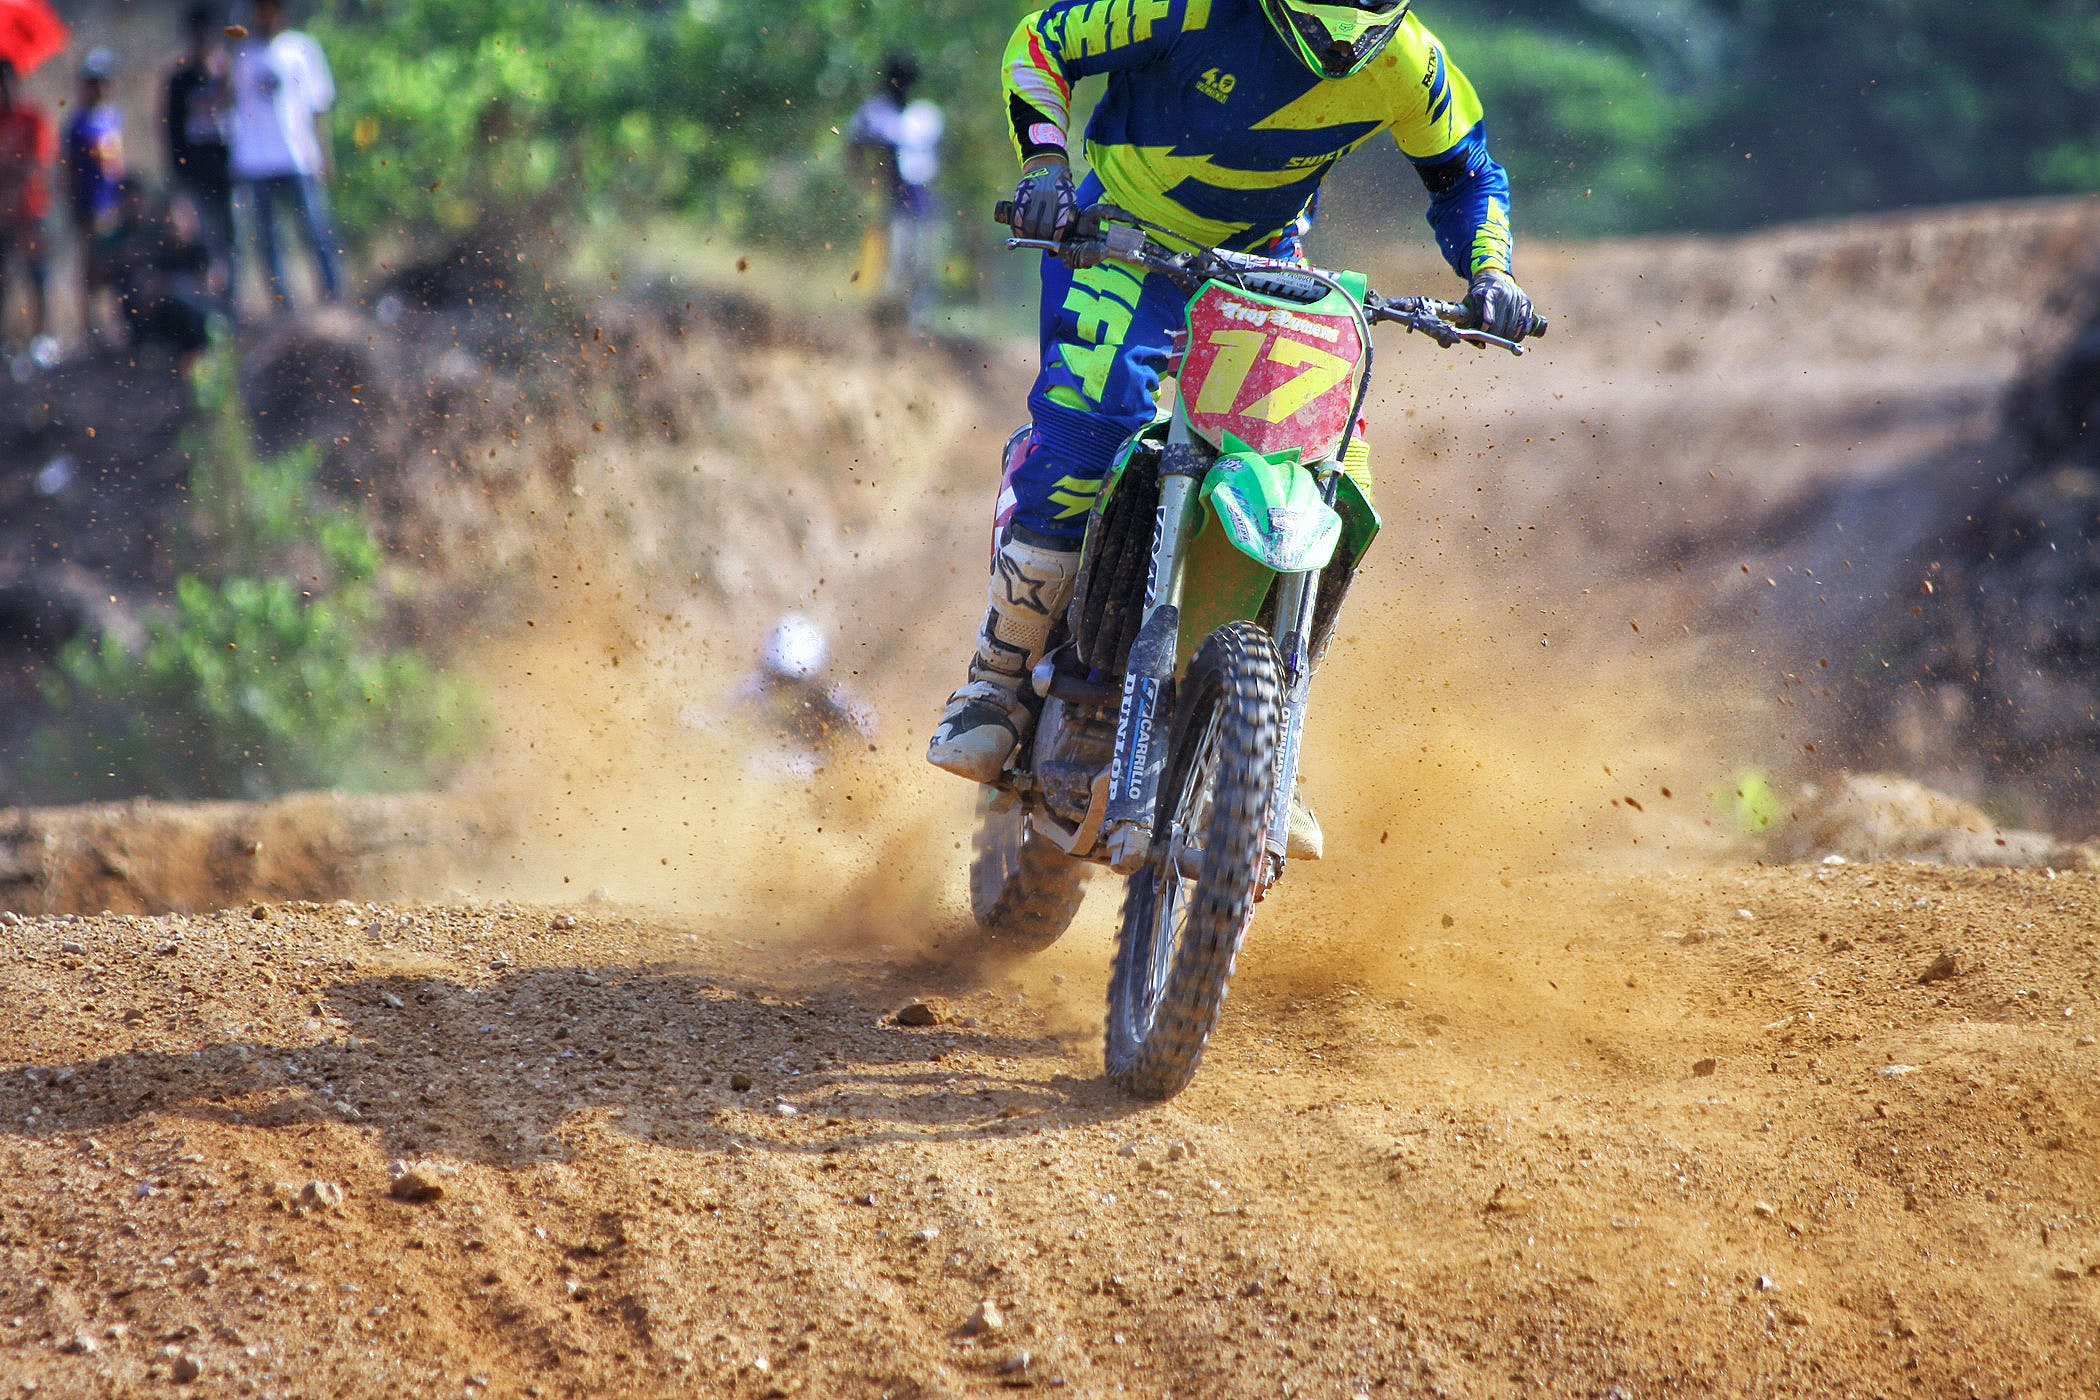 Man Riding Green Dirt Motorcycle during Daytime